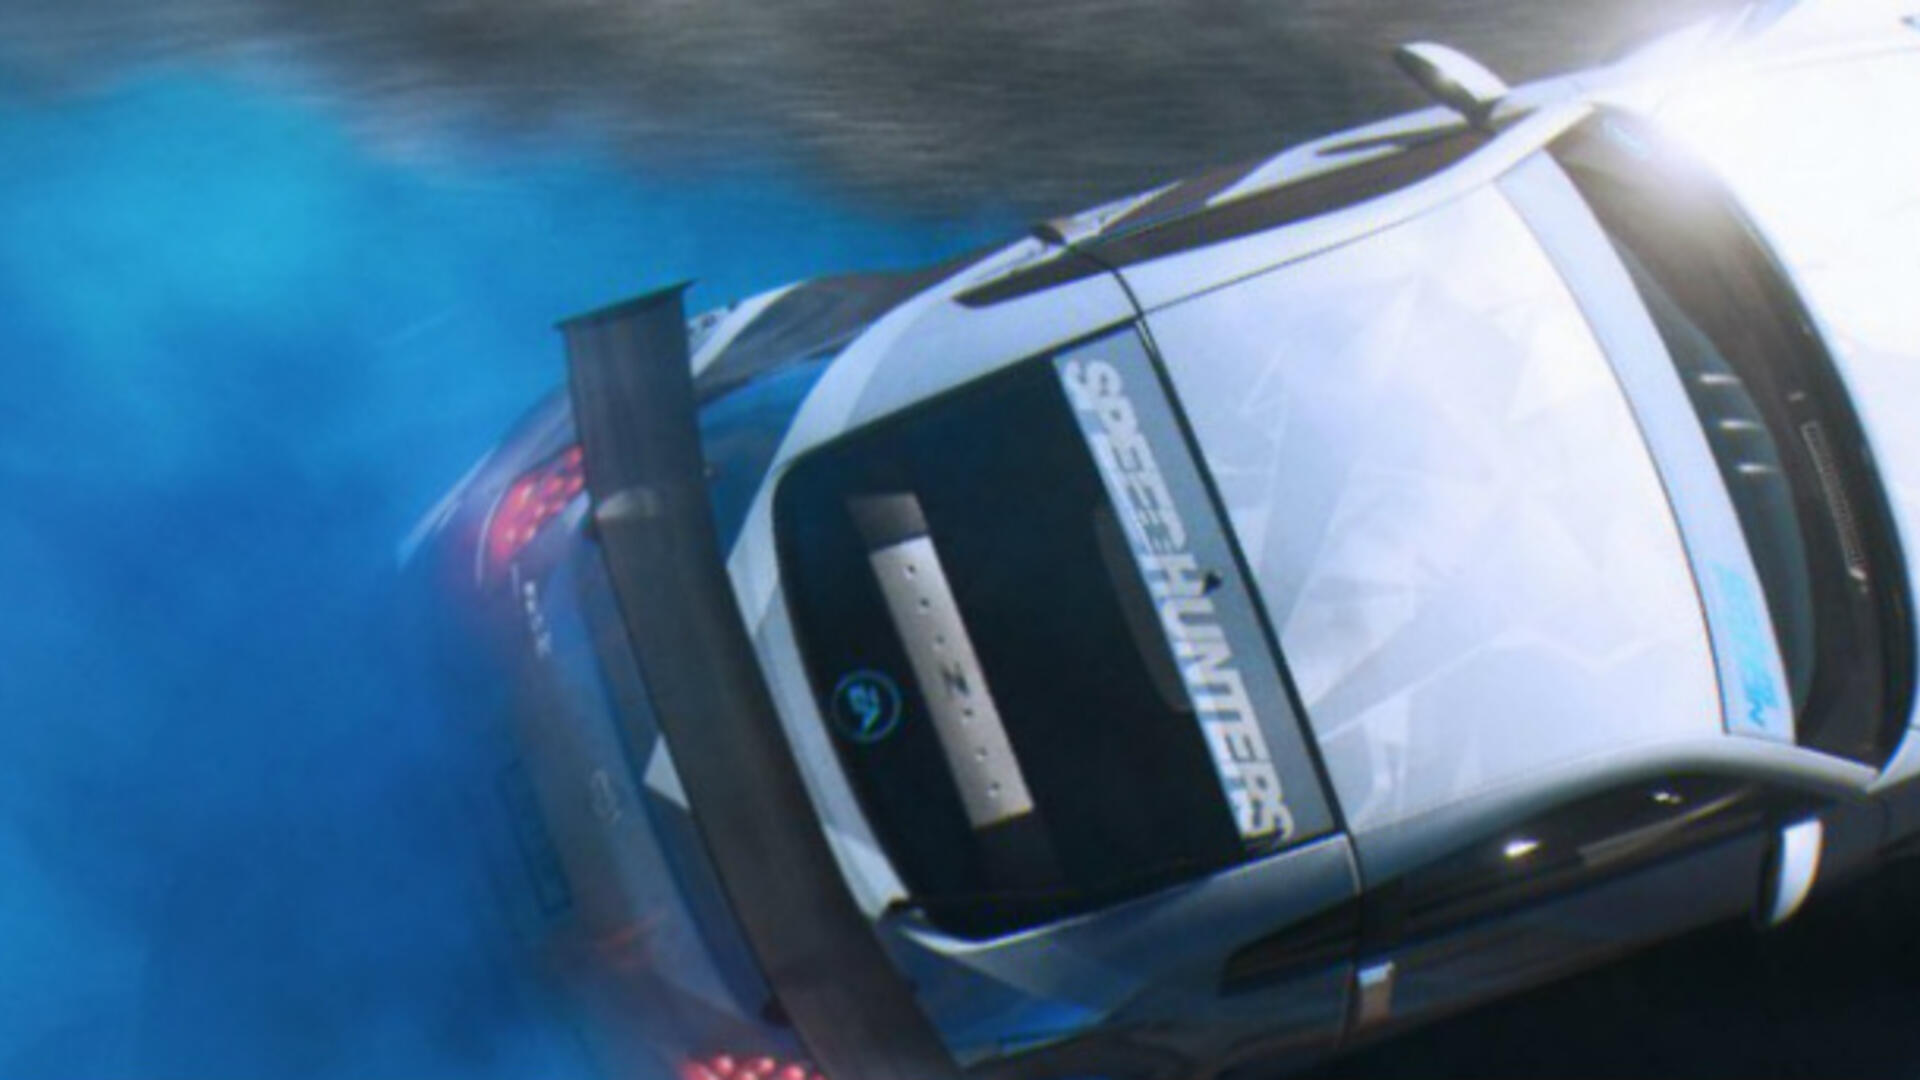 After Star Wars Battlefront 2, Need for Speed Payback Also Improves Its Loot and Progression Systems